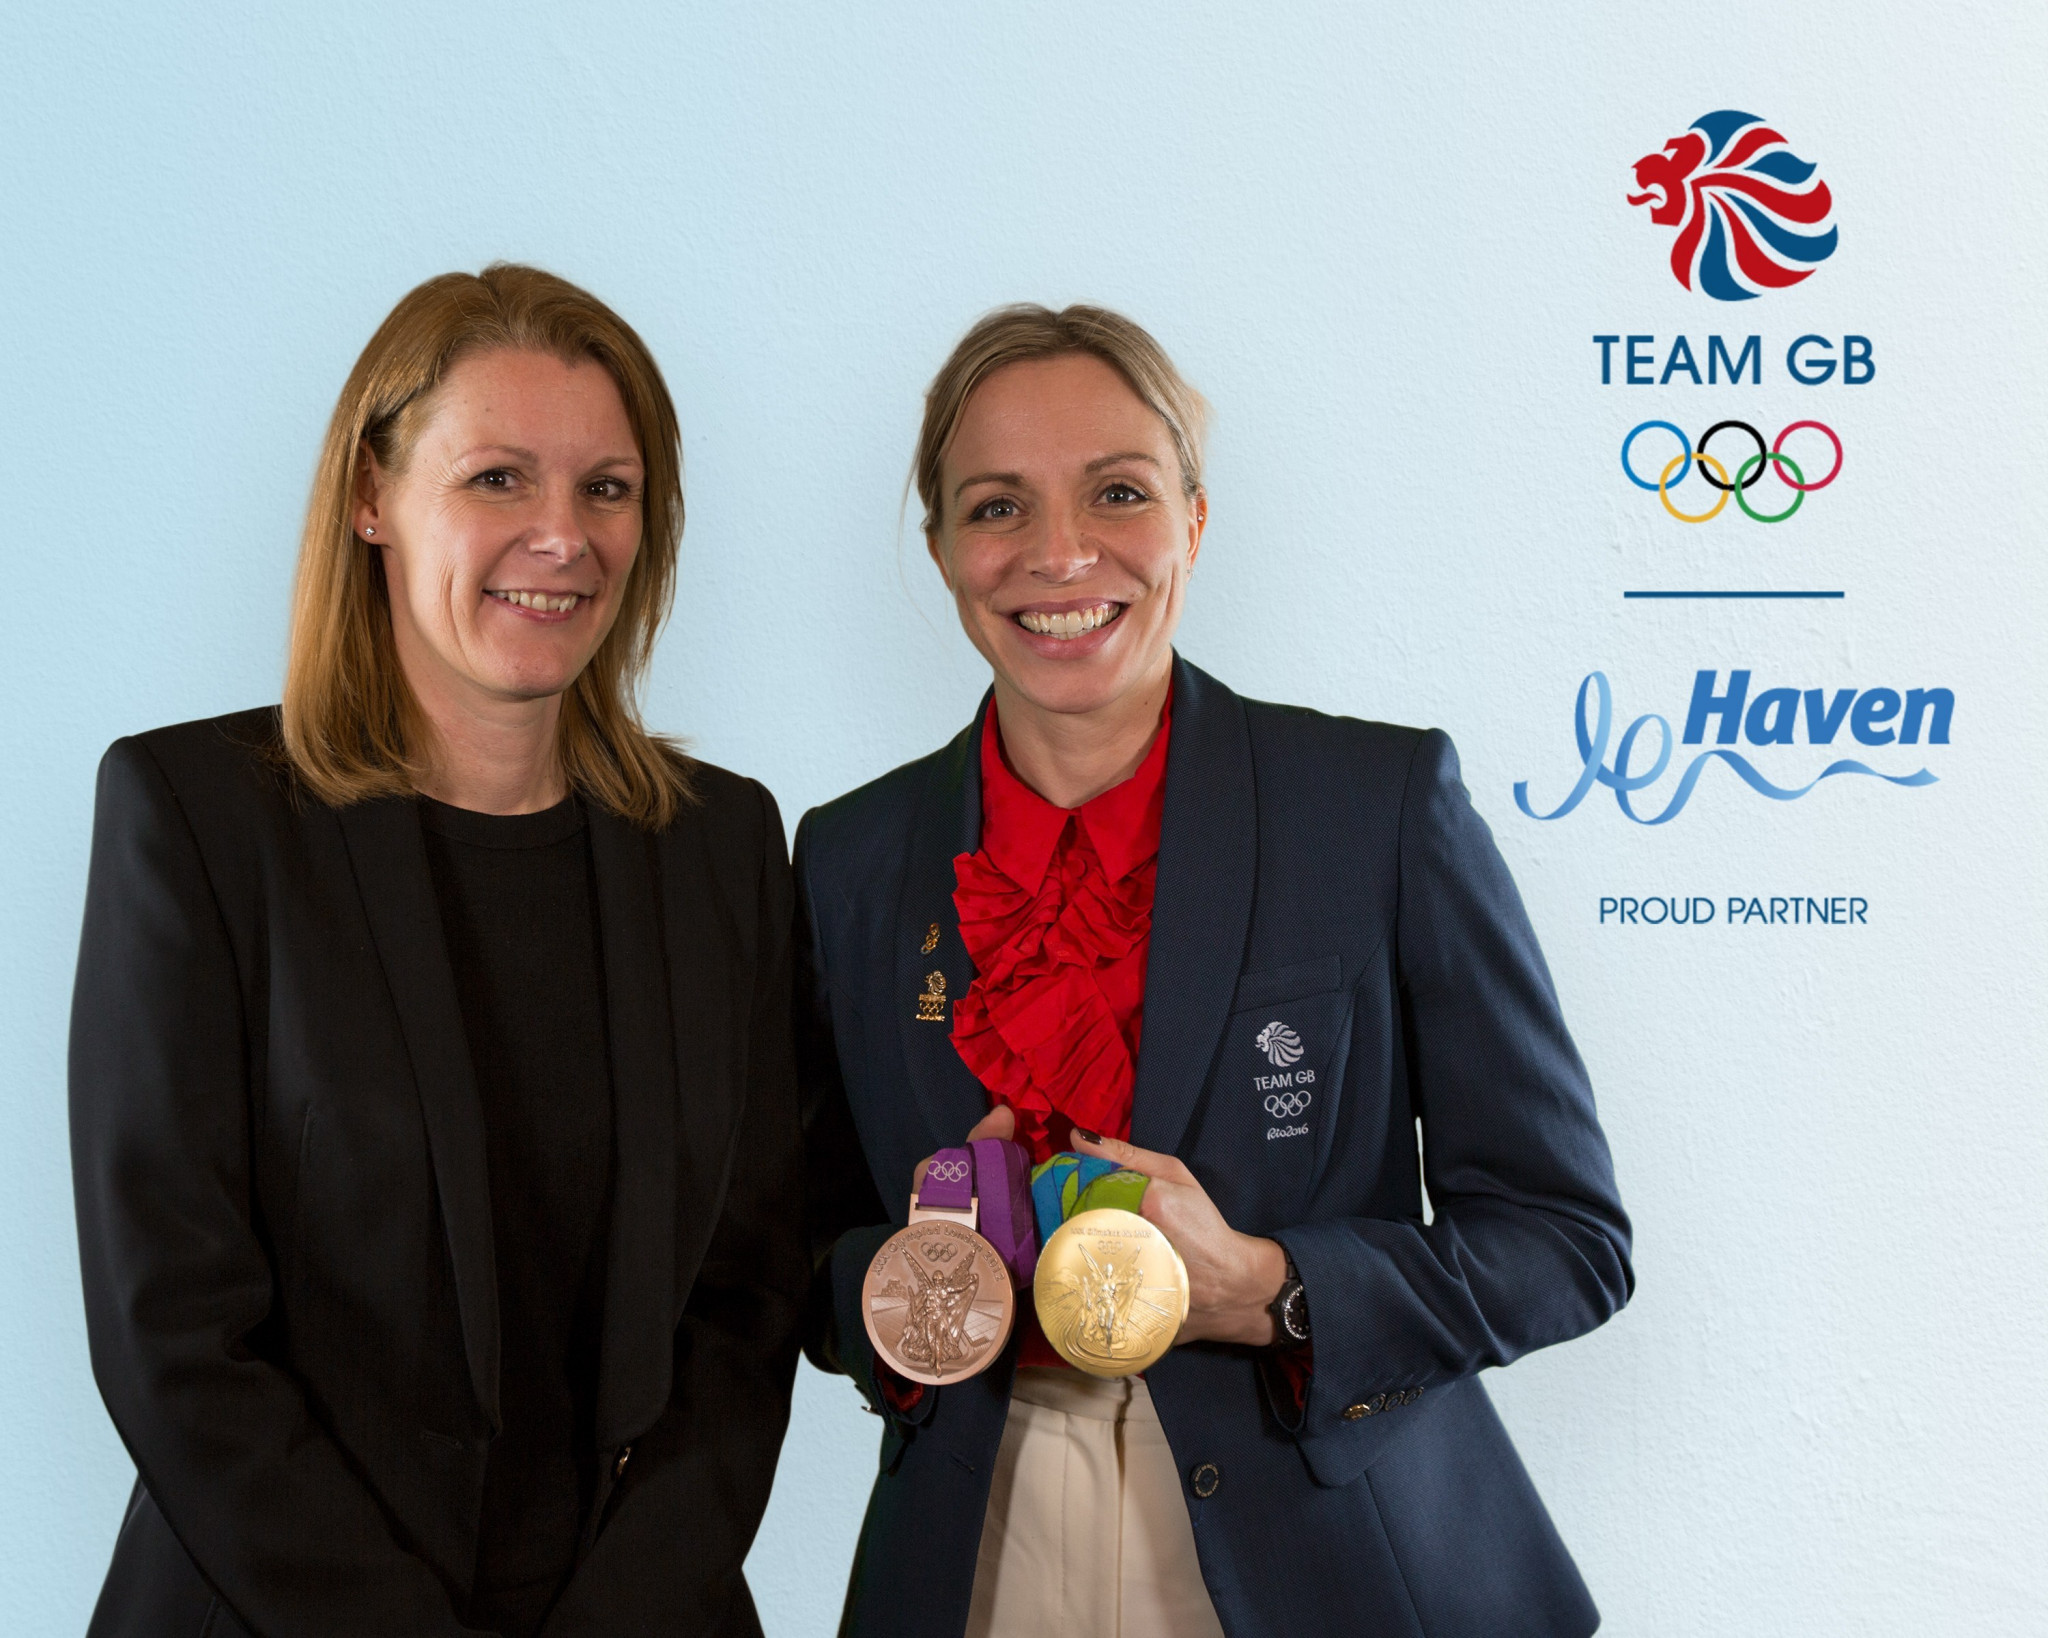 Haven become Team GB's official partner ahead of Tokyo 2020 as Persimmon deal funds grassroots